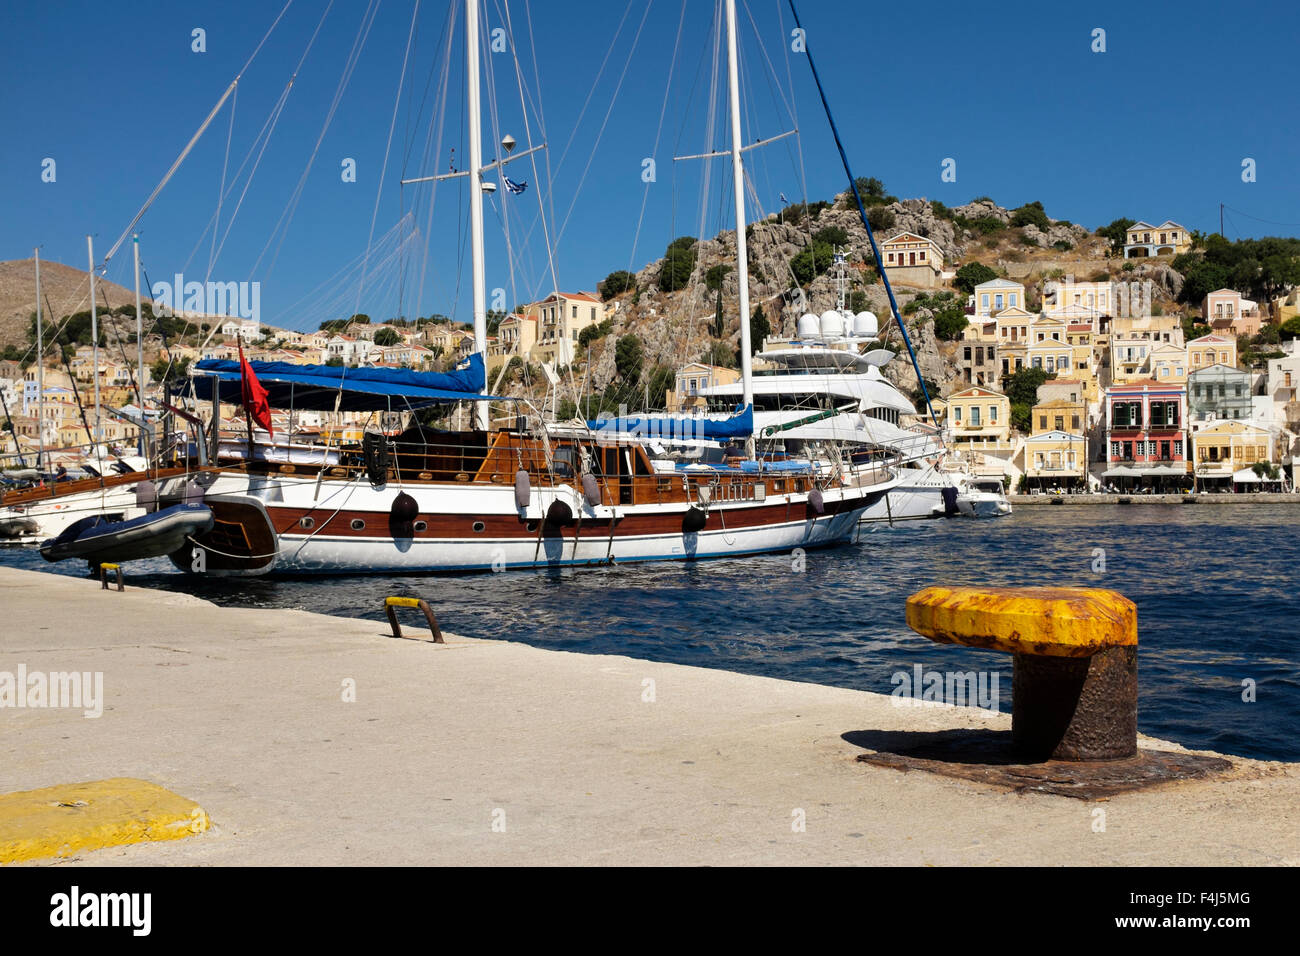 A twin masted gulet  in the harbour at Yialos, on the Greek island of Symi. Stock Photo